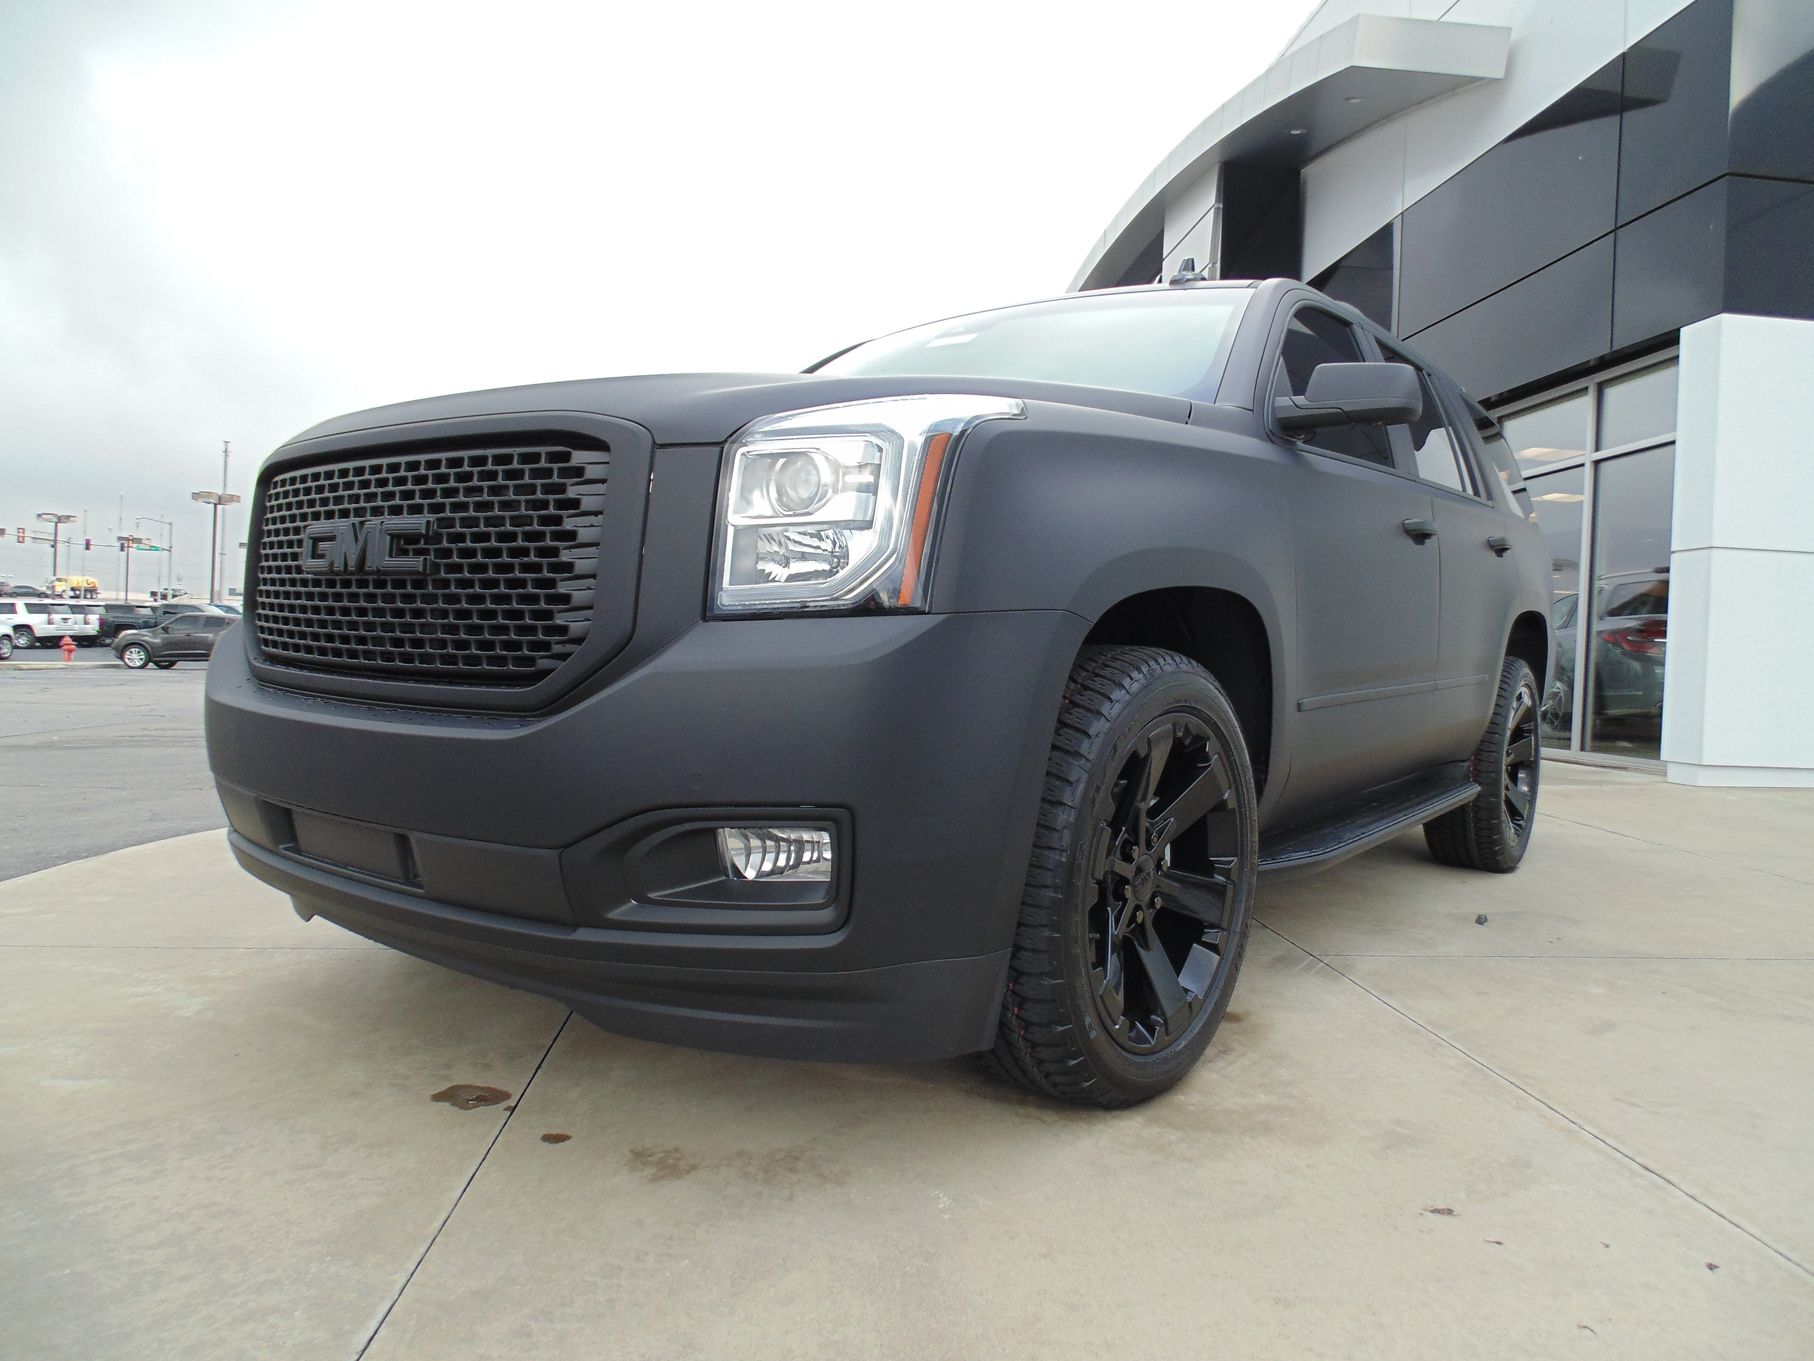 For Those Of You Who Are Fans Of Matte Black We Have The Yukon For You 2017 Gmc Yukon Denali Black Diamond Editio Yukon Denali Gmc Yukon Gmc Yukon Denali